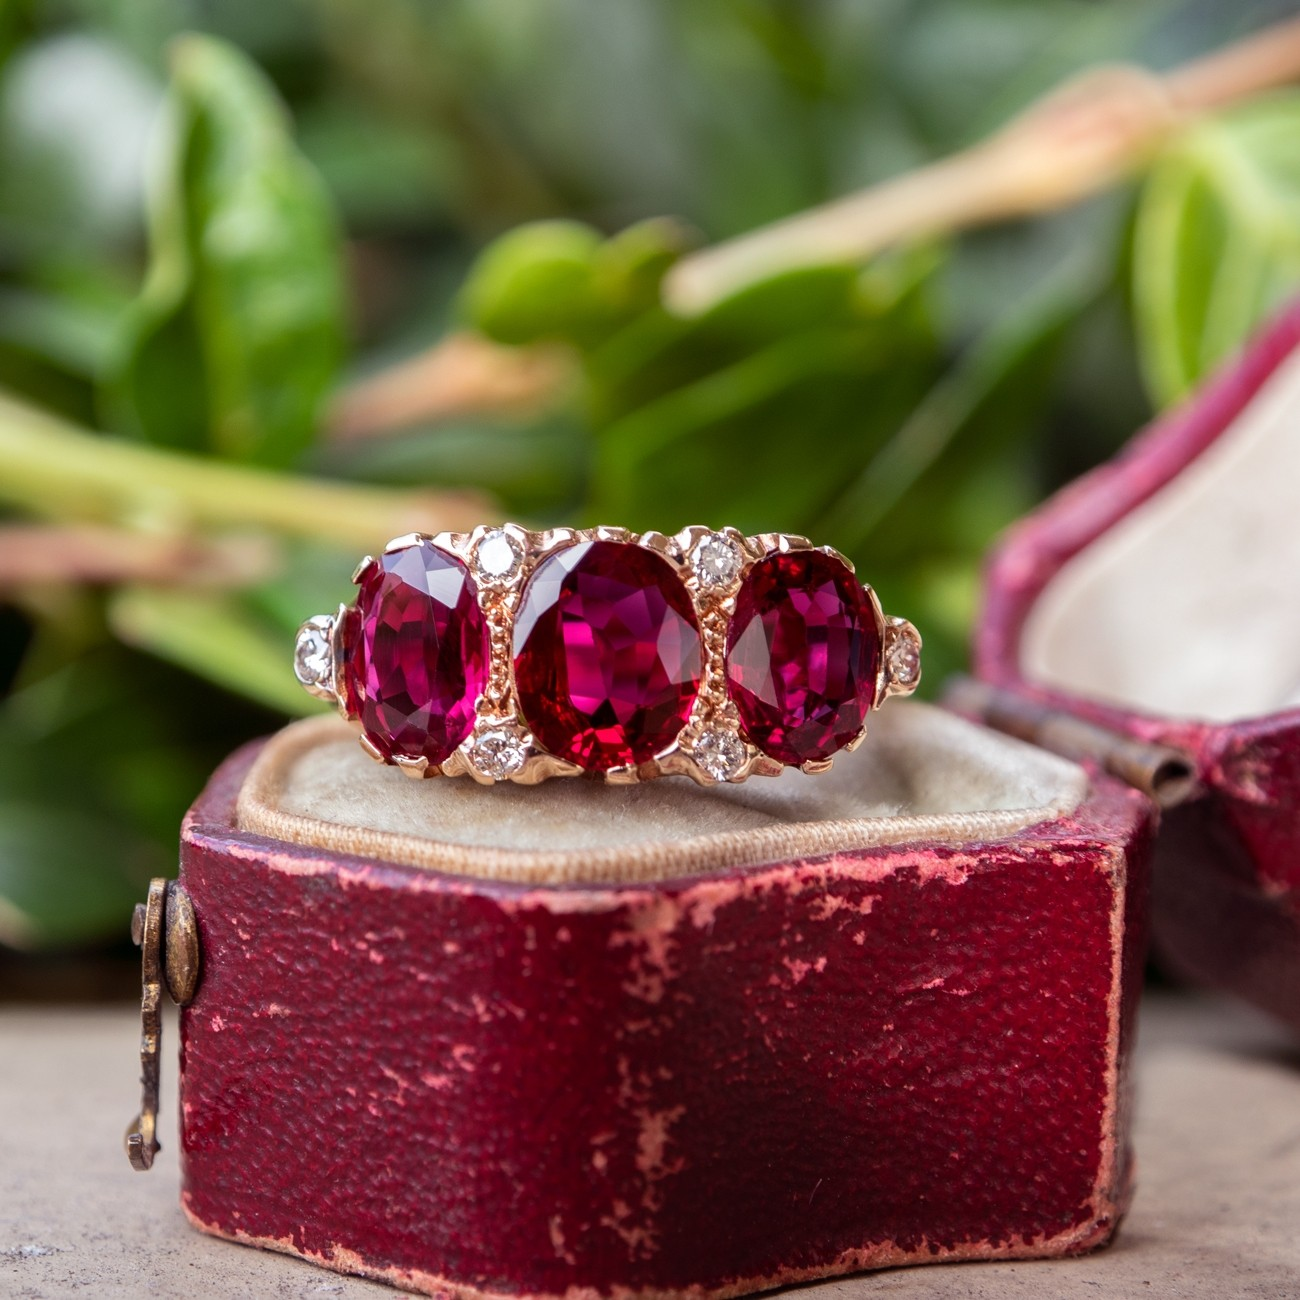 Eragem Post Page 3 Jewelry History News And Happenings